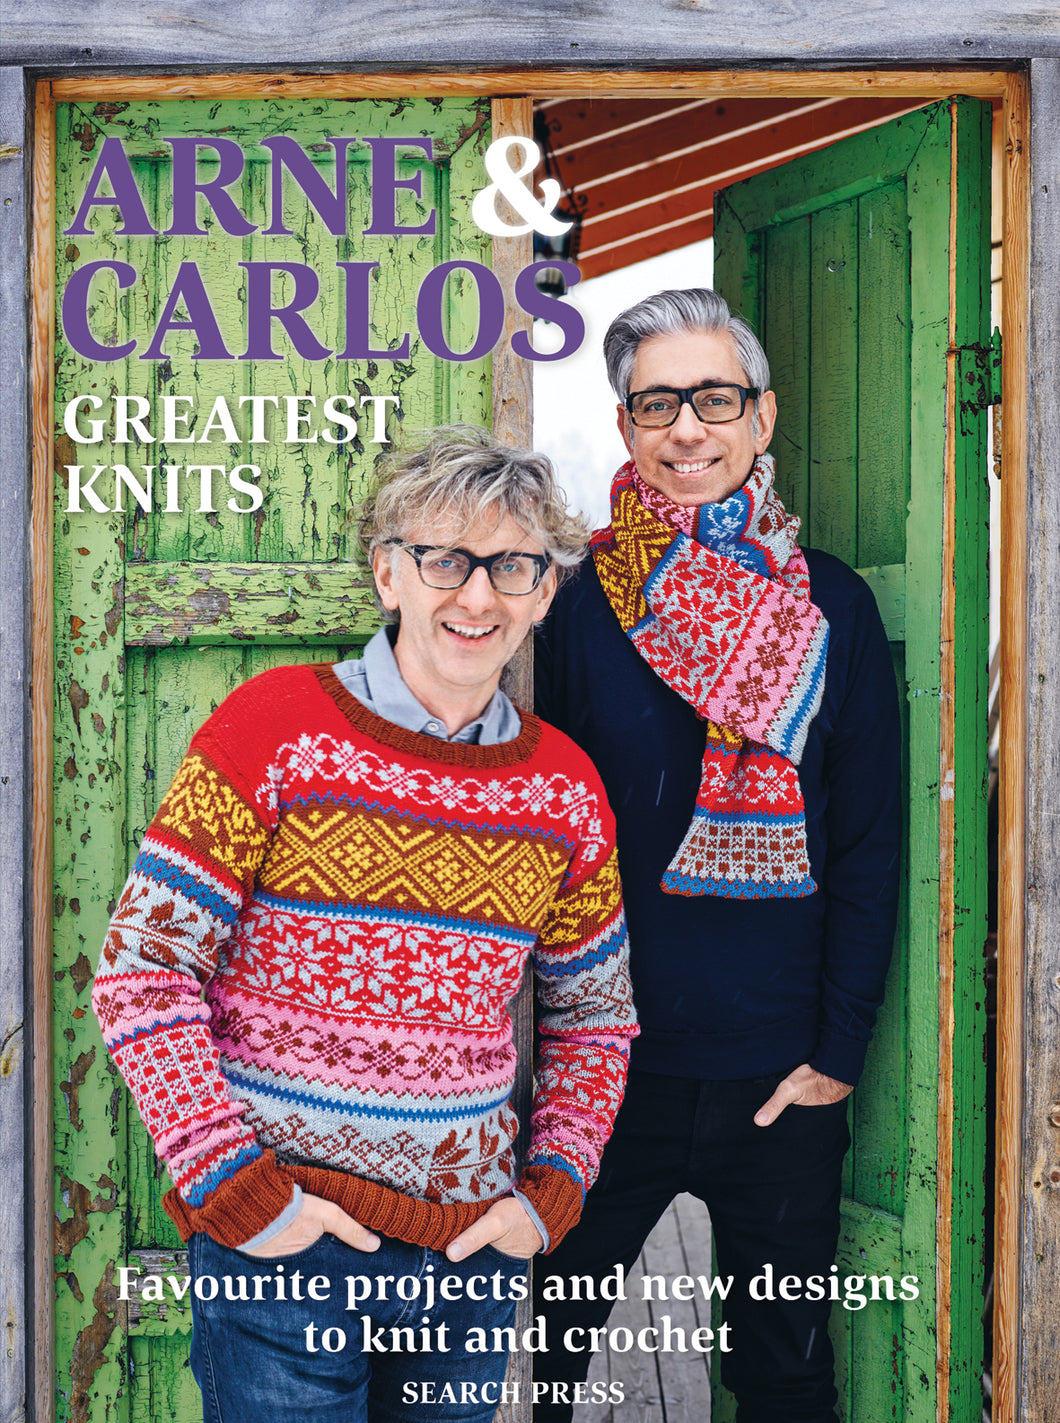 Arne & Carlos - Greatest Knits